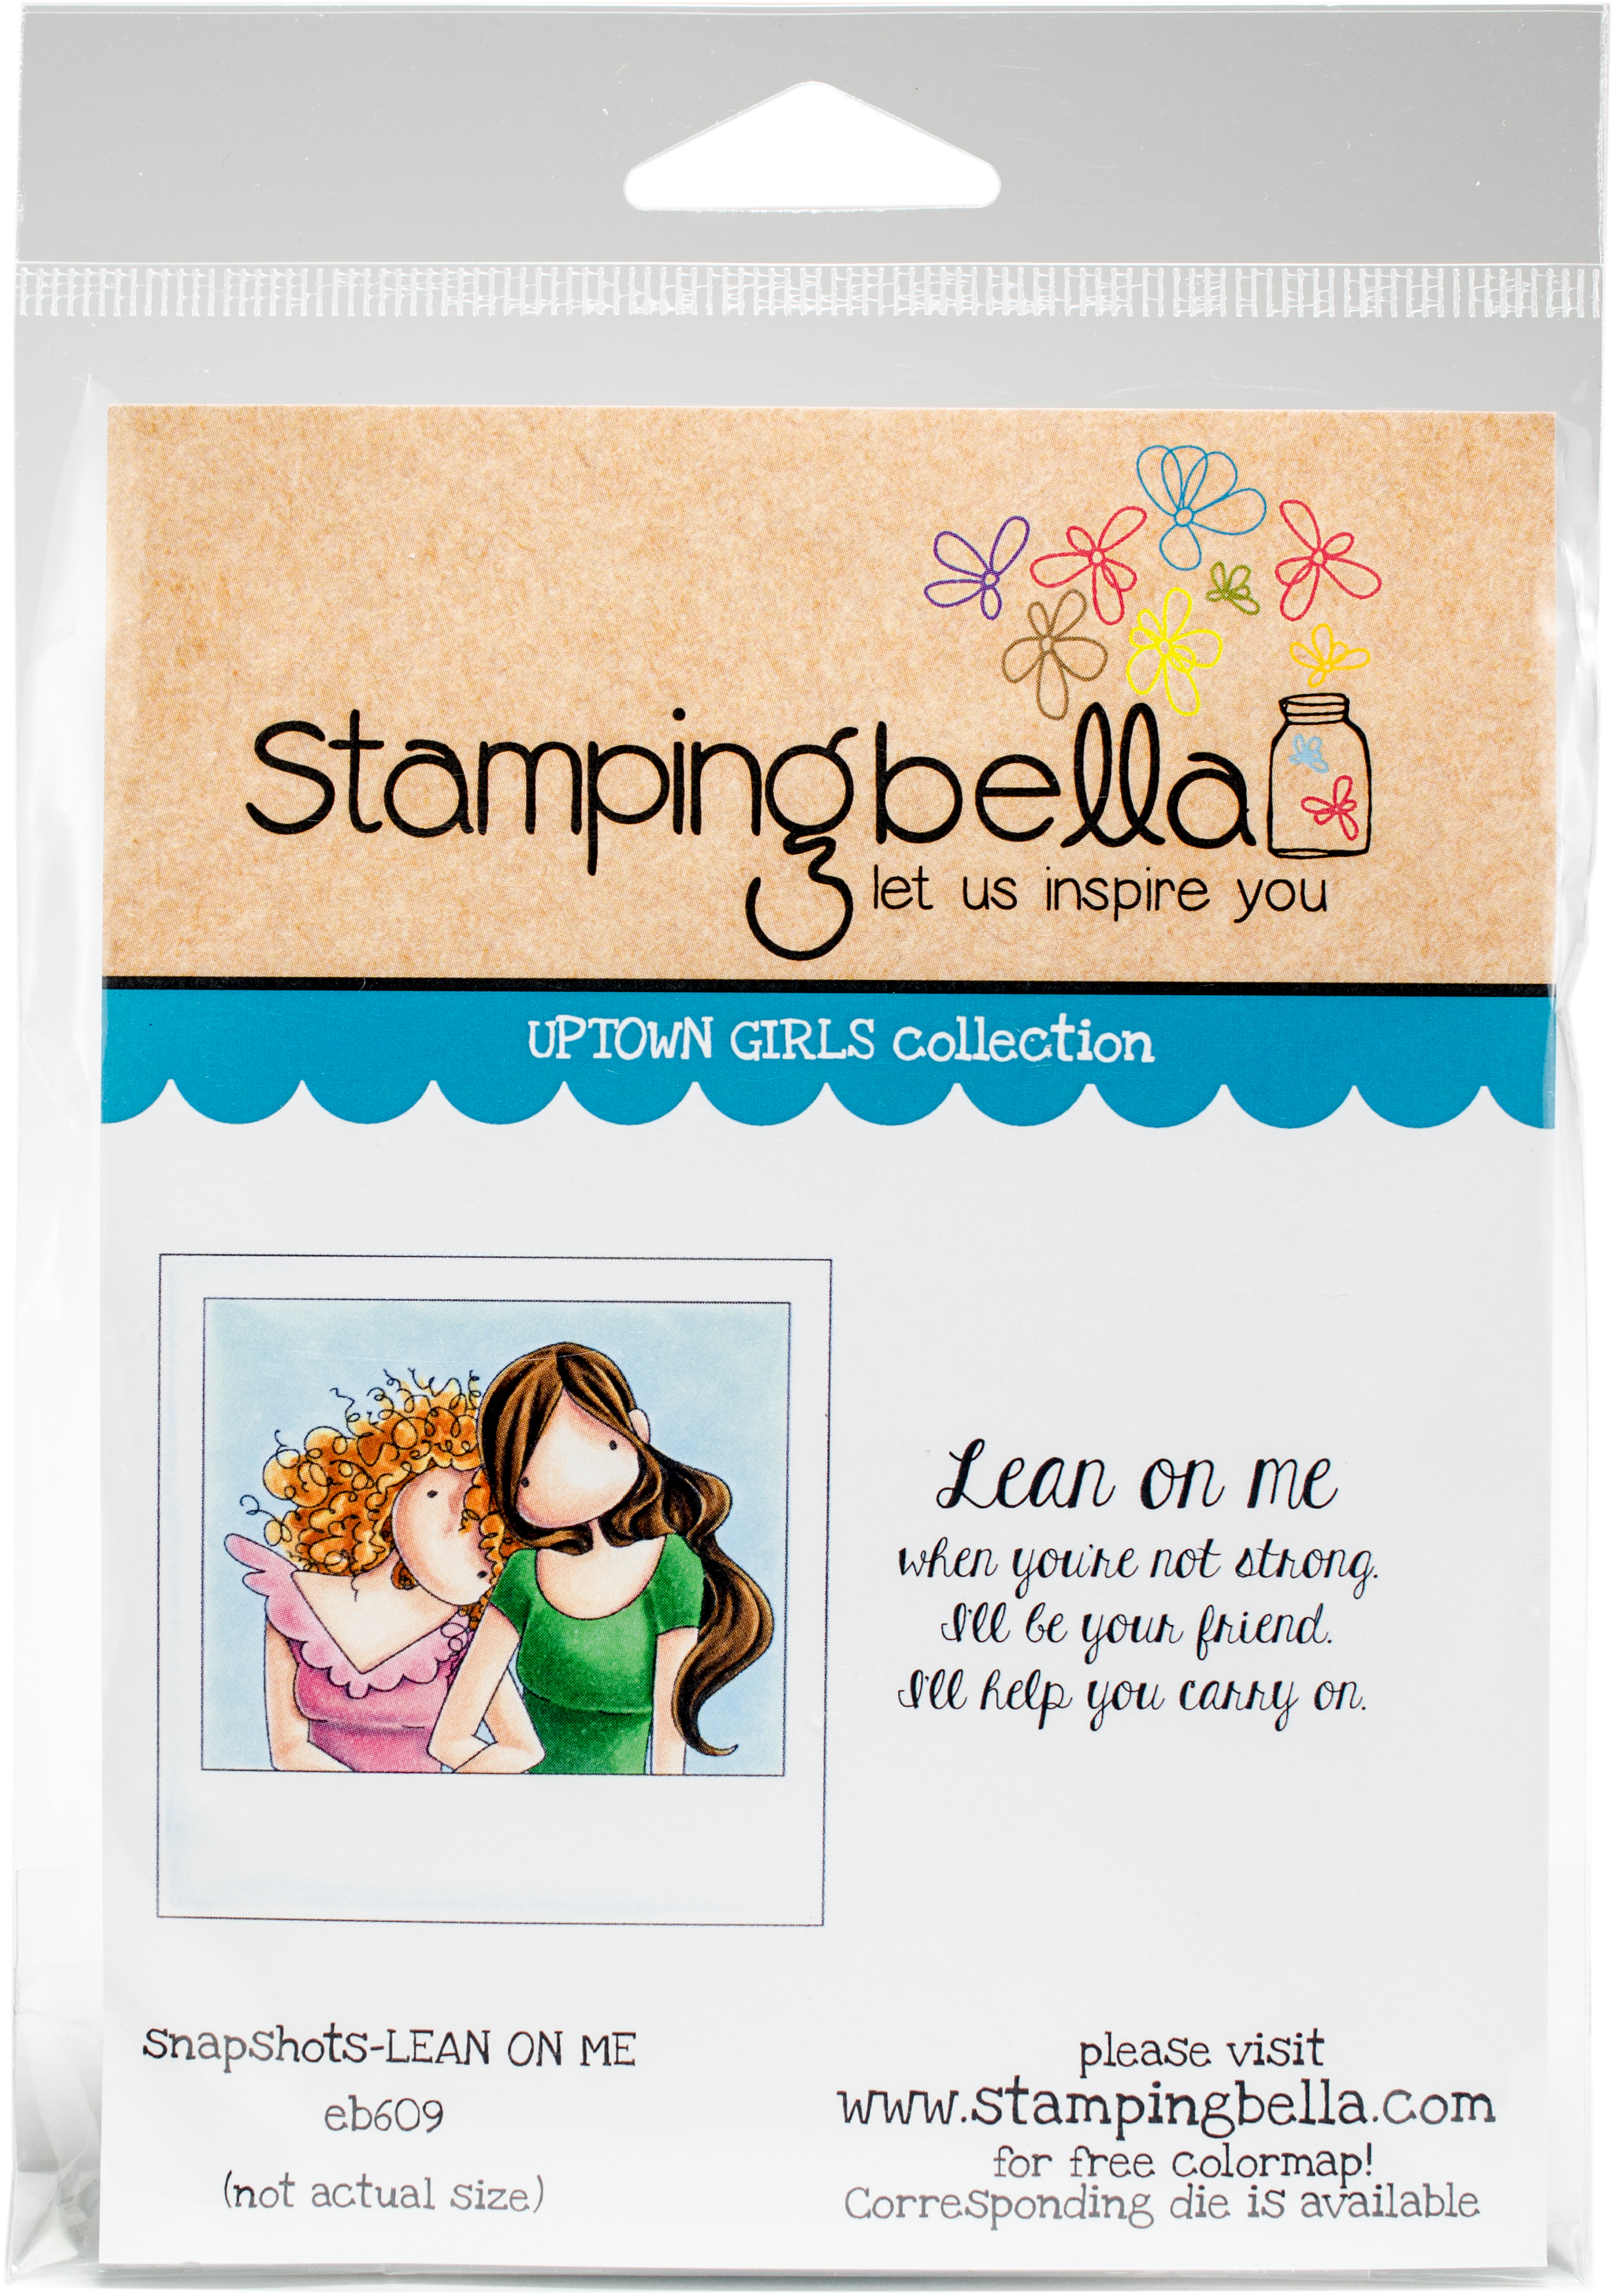 ^Stamping Bella Uptown Girls Rubber Stamp Set Snapshots Lean on Me (eb609)